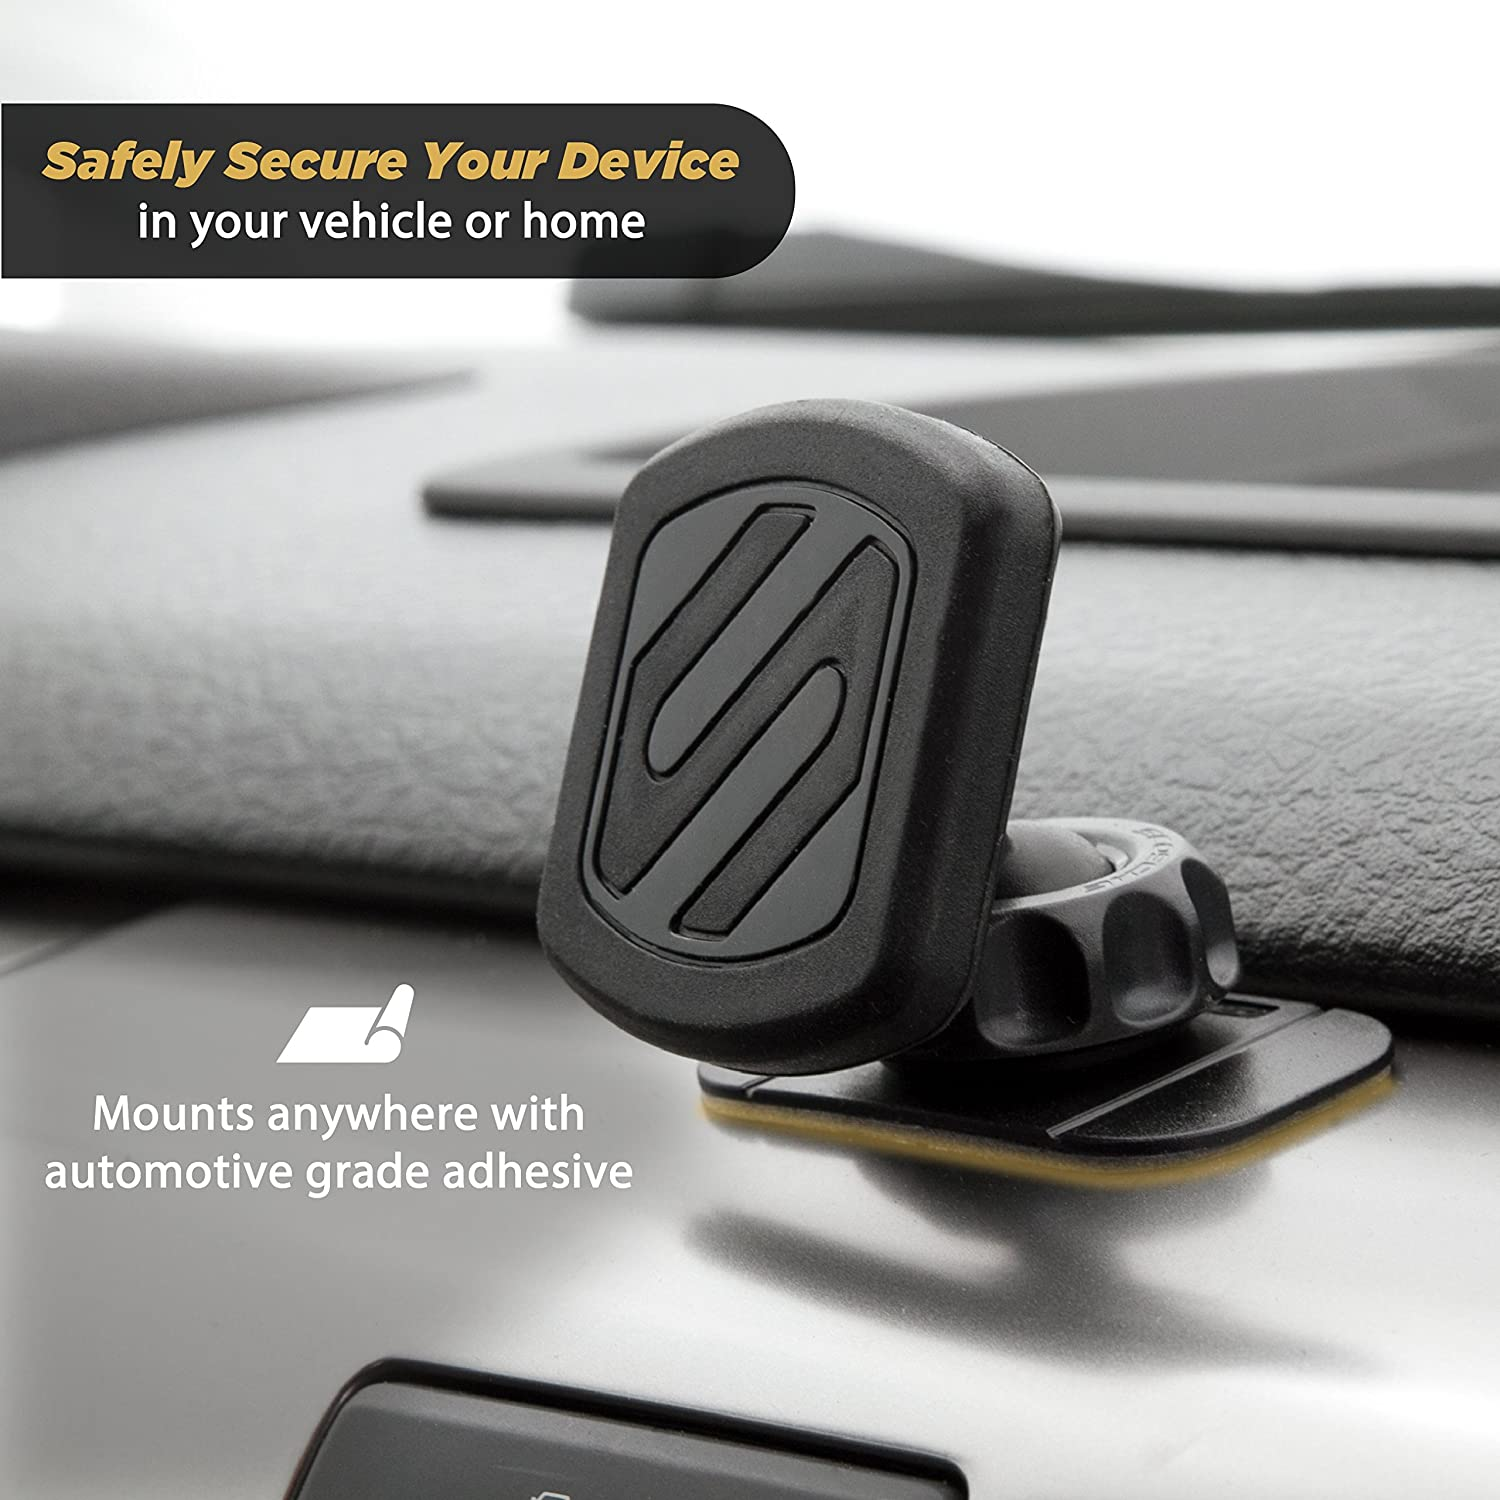 SCOSCHE MAGDGPS-R MagicMount Universal Magnetic Mount Holder for Mobile Devices Black Renewed